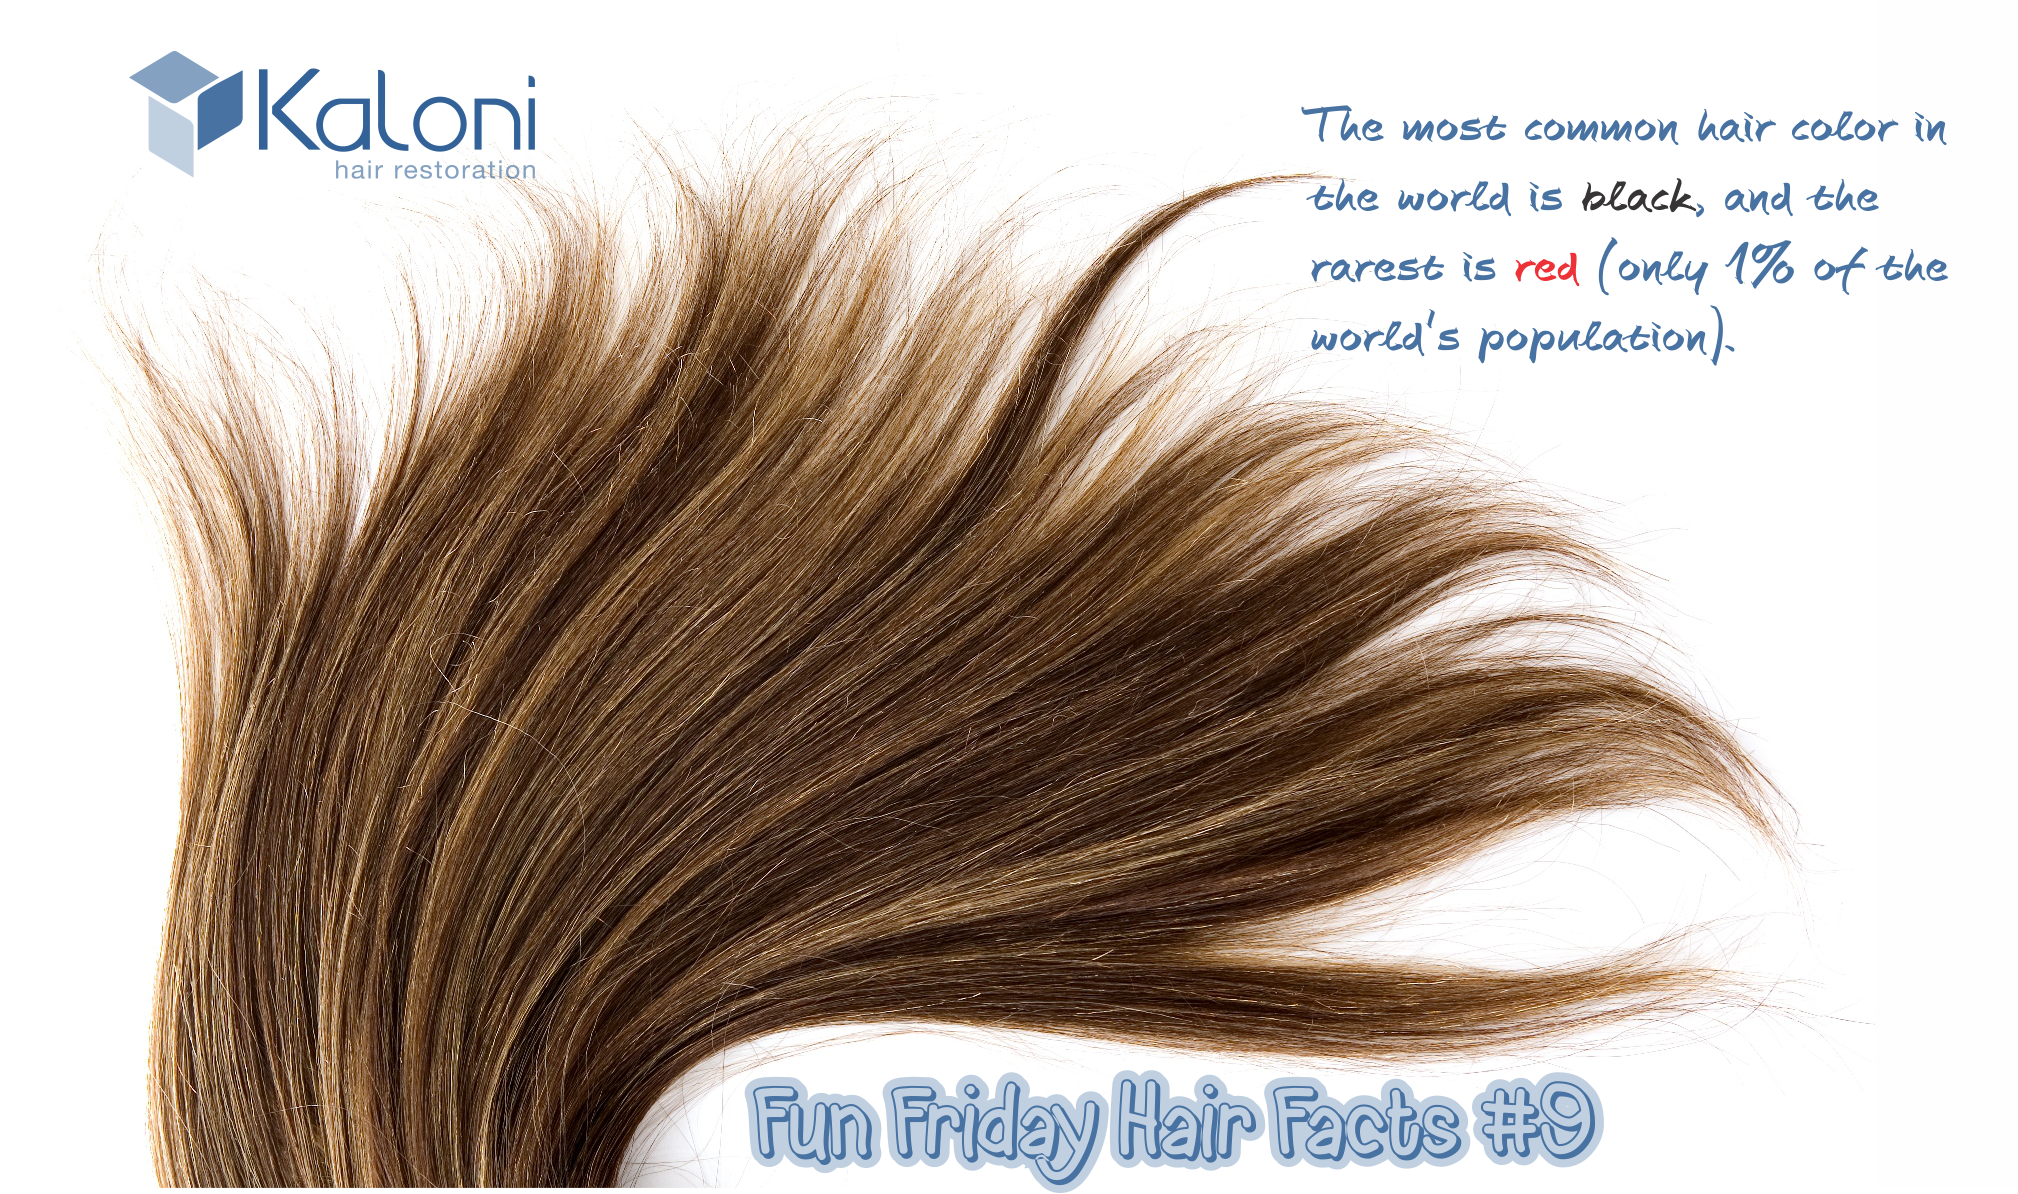 Fun Friday Hair Fact #9 The most common hair color in the